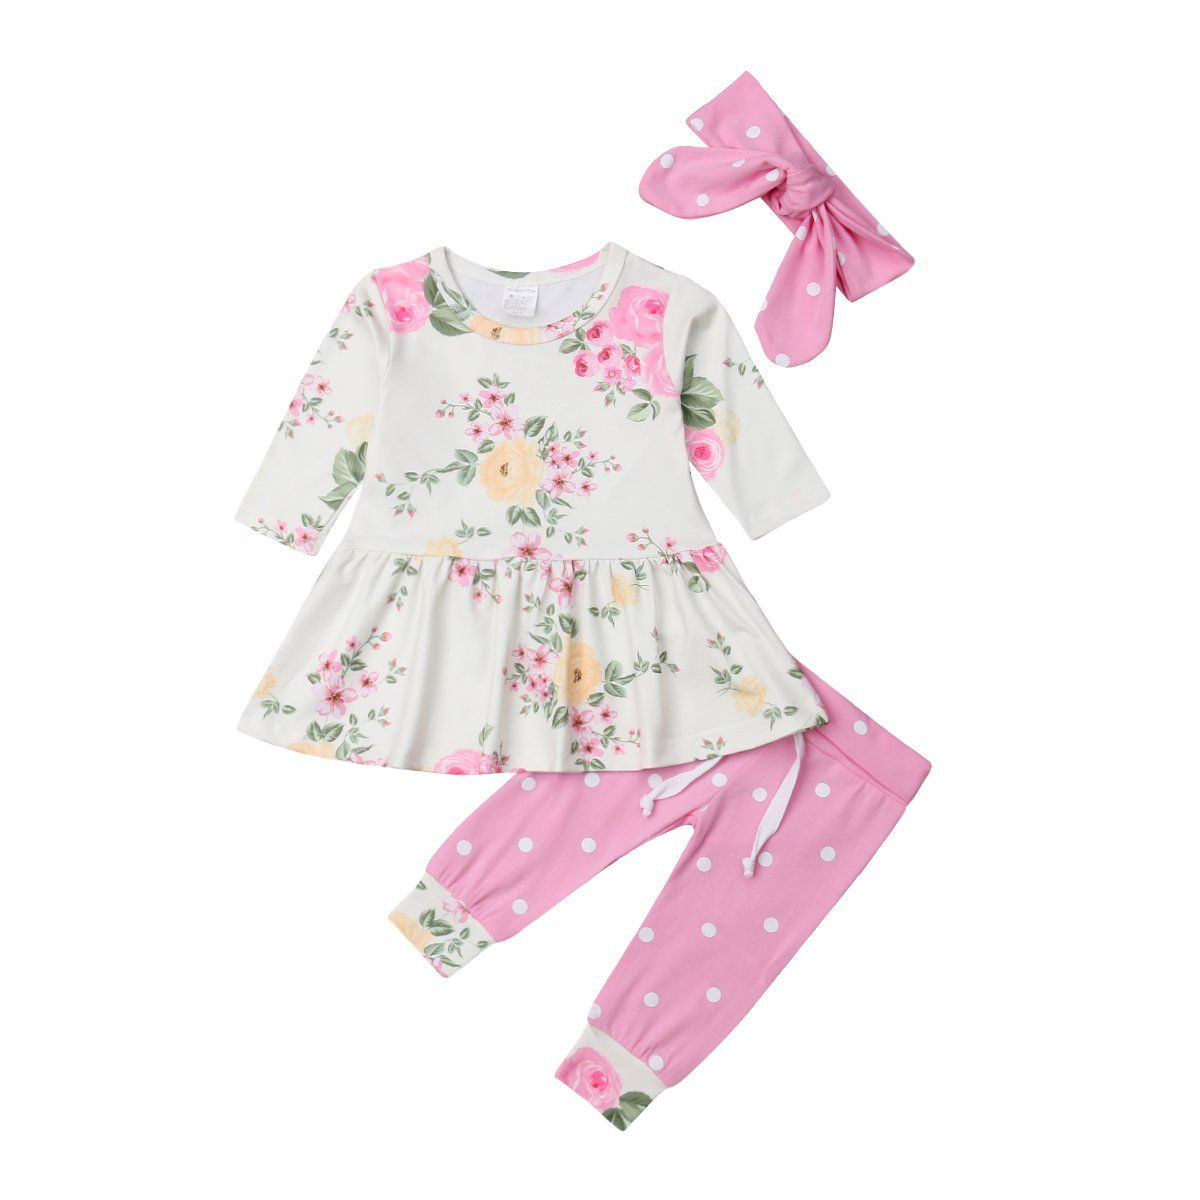 Baby floral tunic top, pants and headband set  Roupas femininas